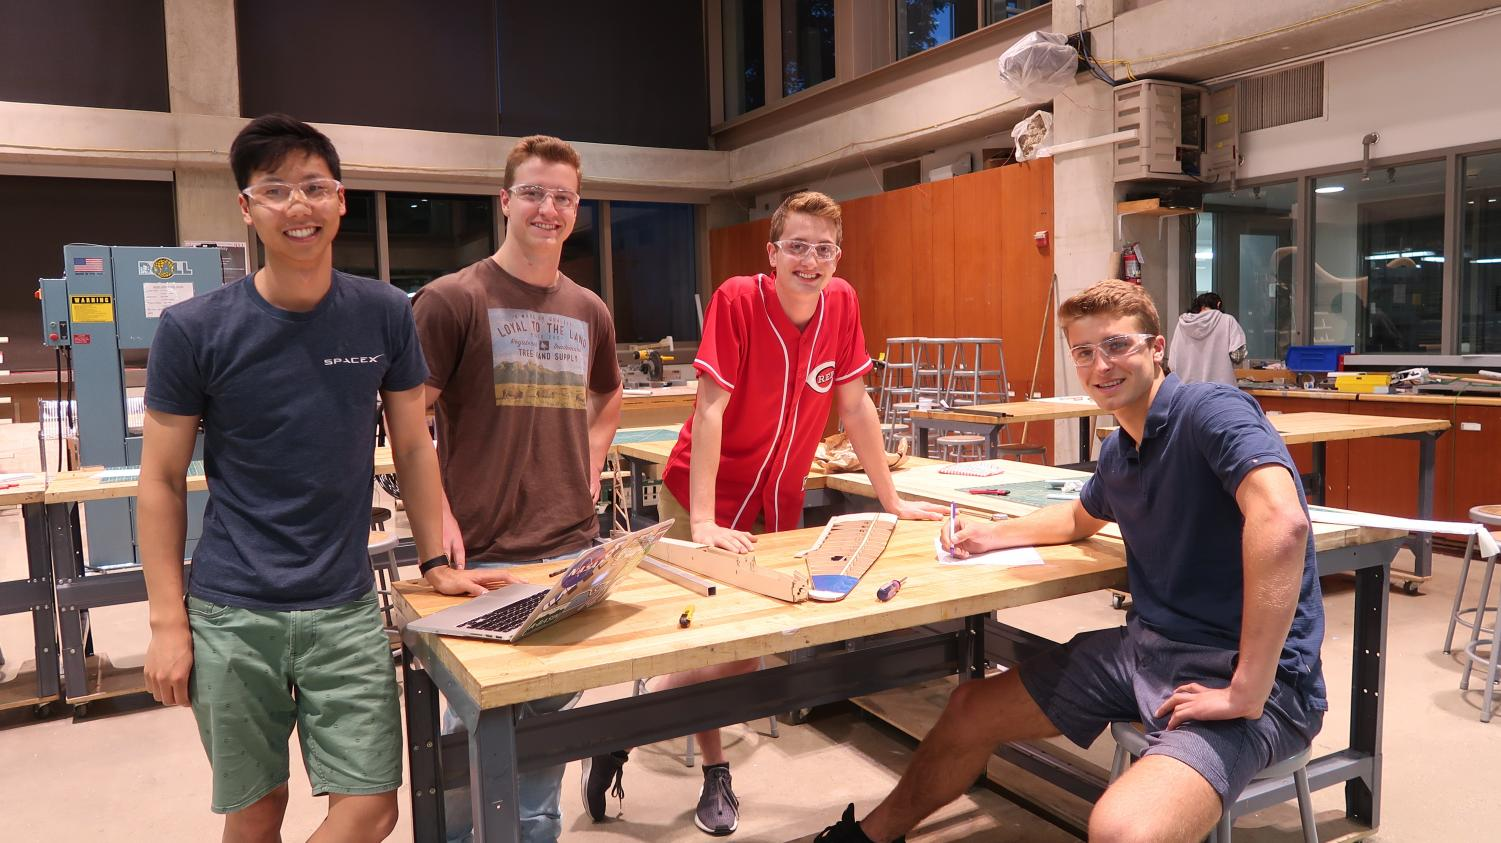 From left to right: Lawrence Luo, Griffin Williamson, Grant Bayer, and Cuyler Dull continuing their work on their plane.